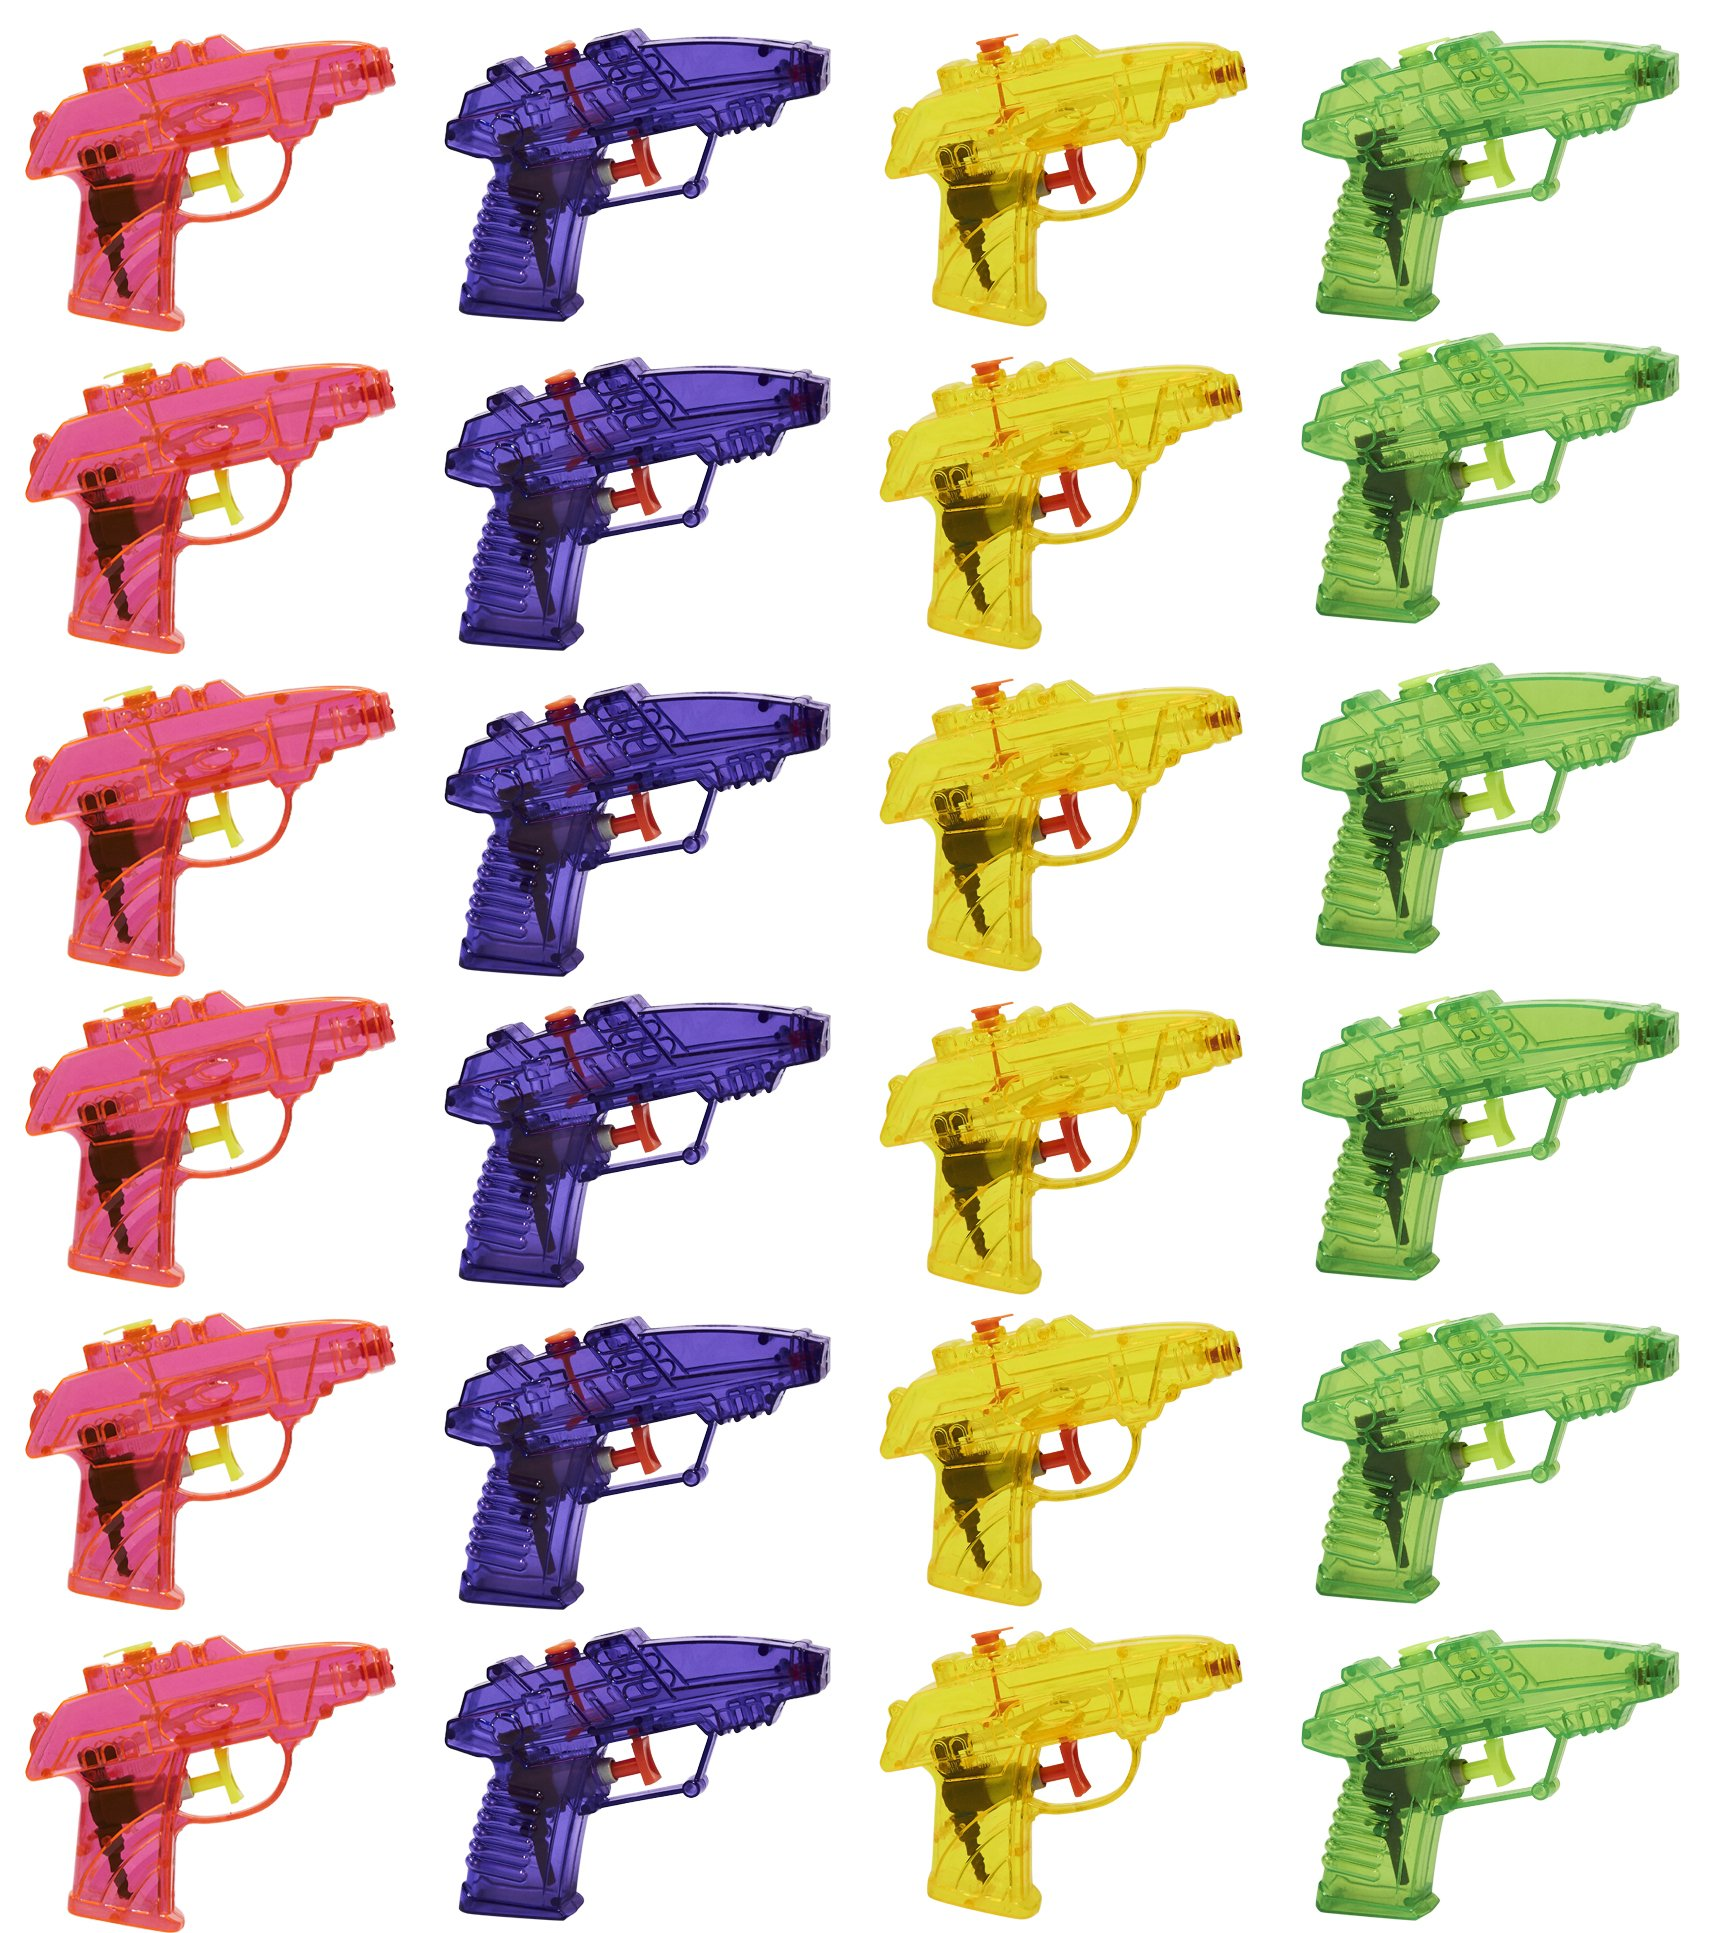 Blue Panda Mini Squirt Guns - 24 Pack of Water Pistol Plastic Toys in Assorted Colors, Yellow, Pink, Purple, Green for Kids Party Favors, Ages 3 and Up by Blue Panda